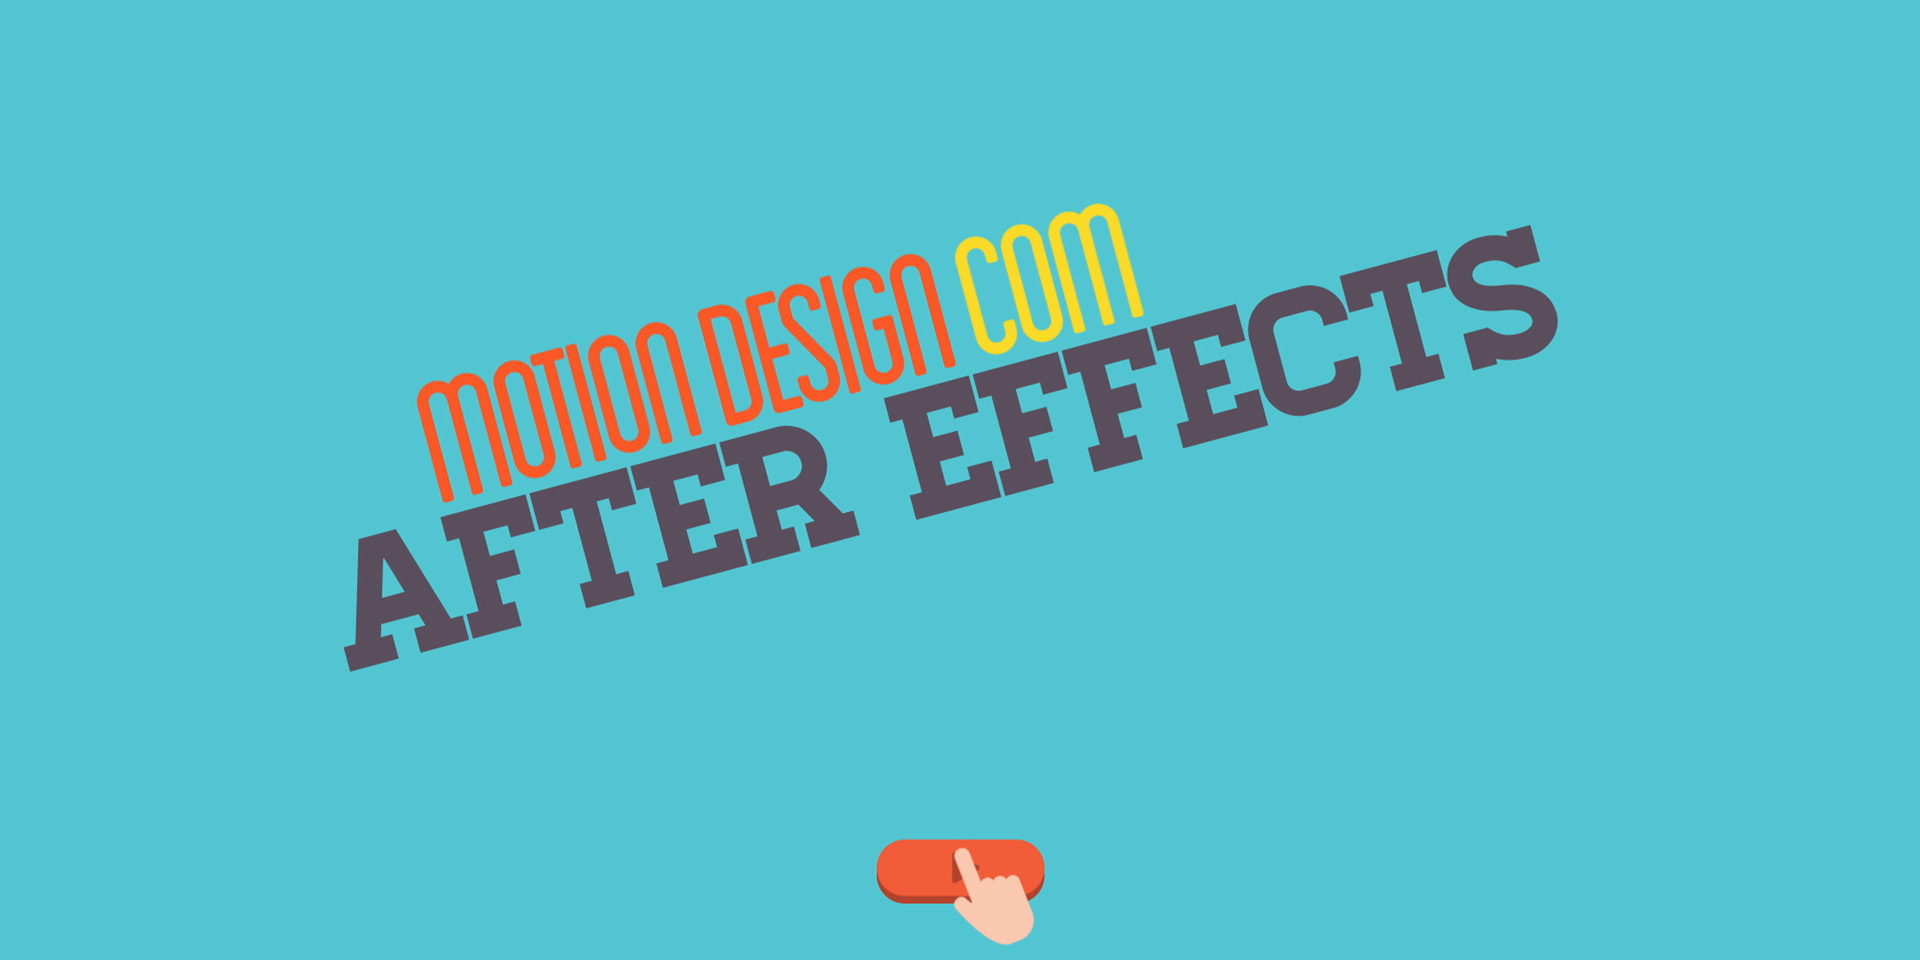 Matricule-se: Motion Design com After Effect v1.0 – Curso Online